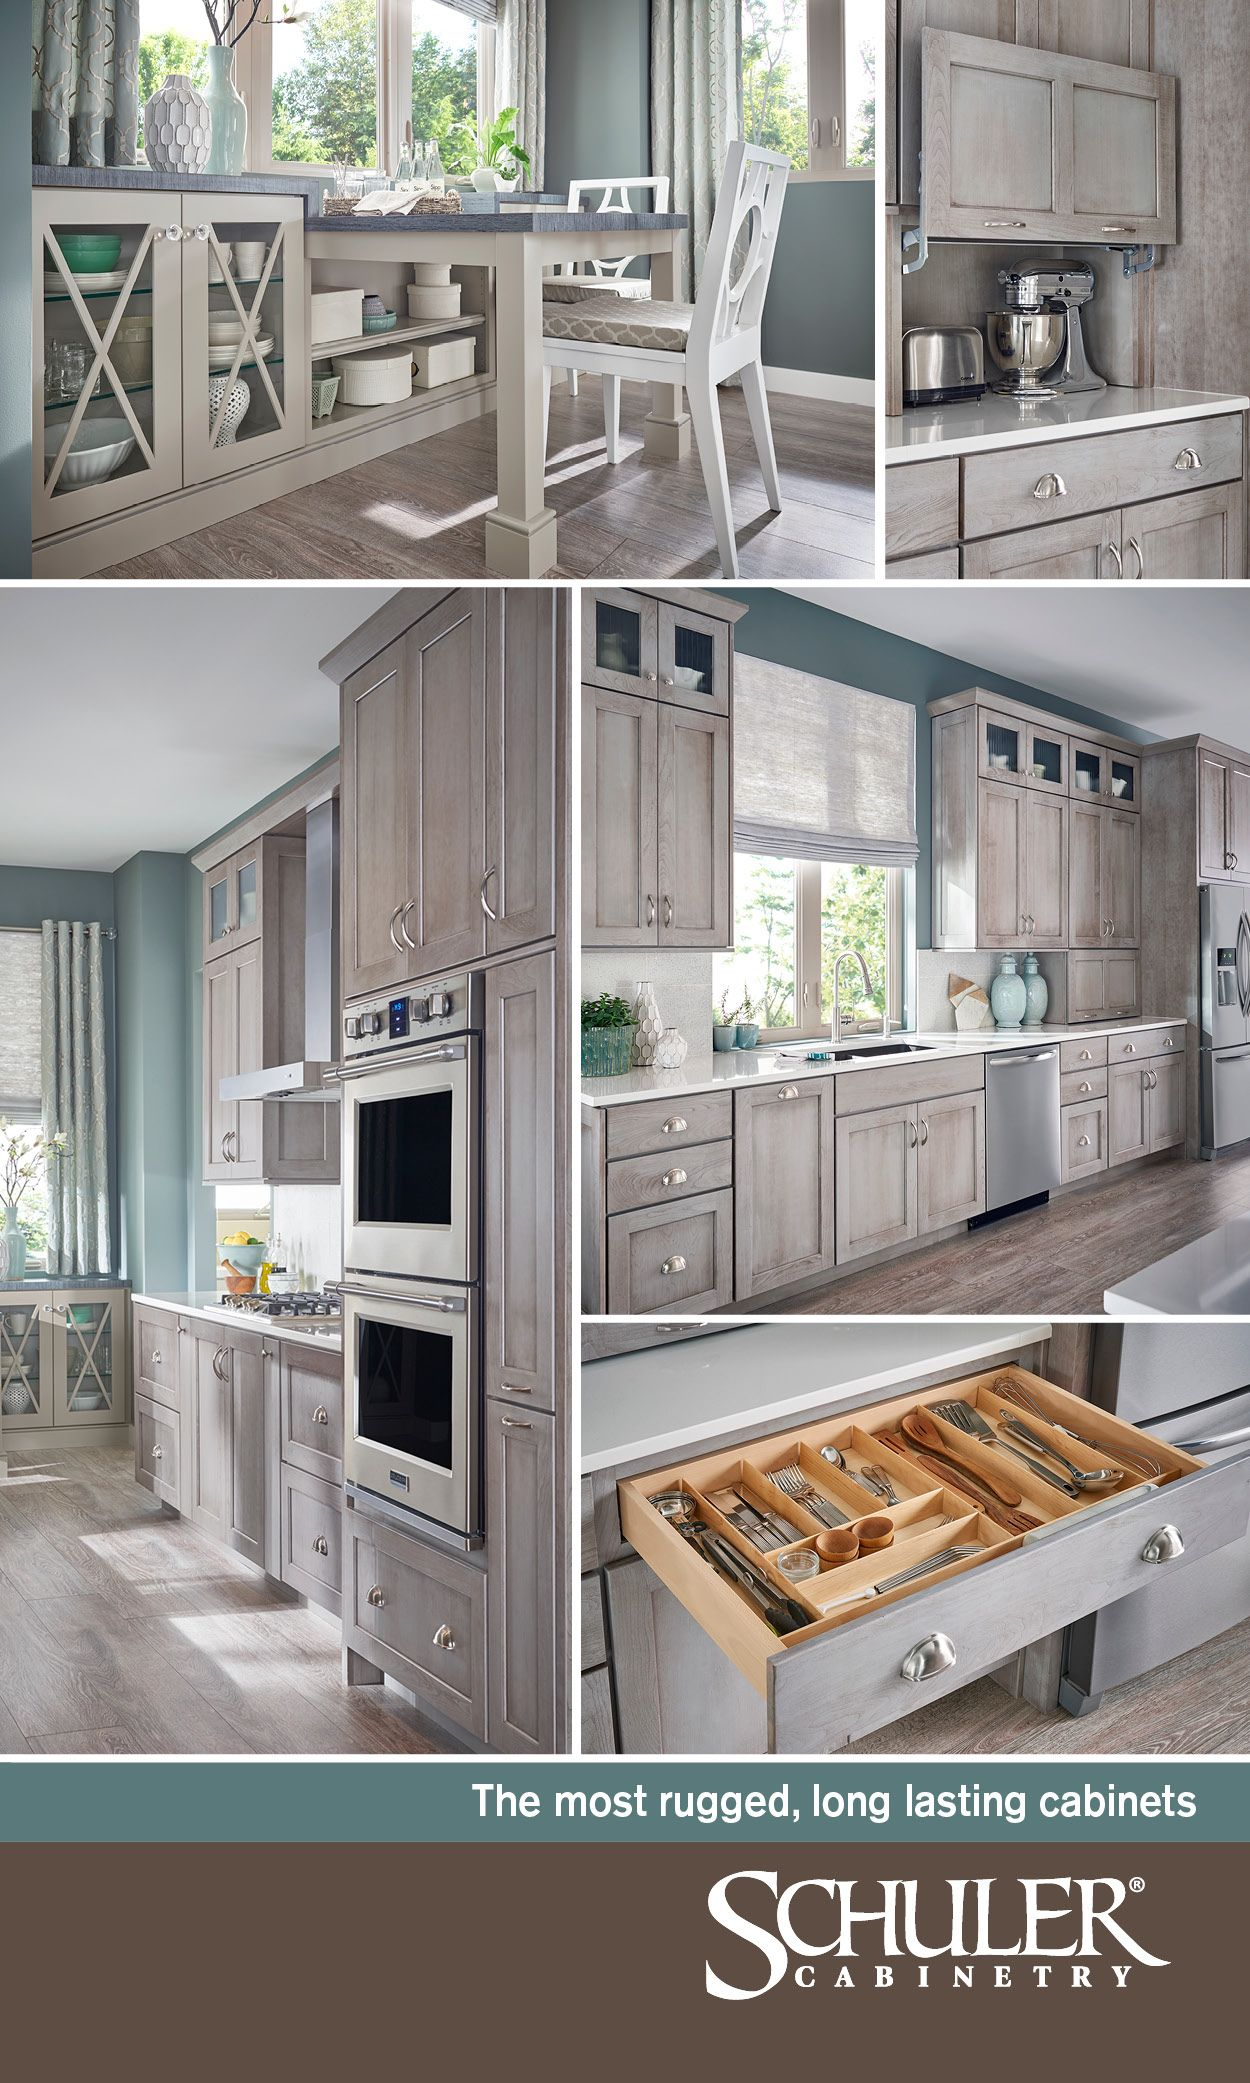 Schuler Cabinetry Offers The Most Rugged Long Lasting Cabinets Thinktough Strongestmaterials Innovati Lowes Kitchen Cabinets Kitchen Cabinets Cabinetry